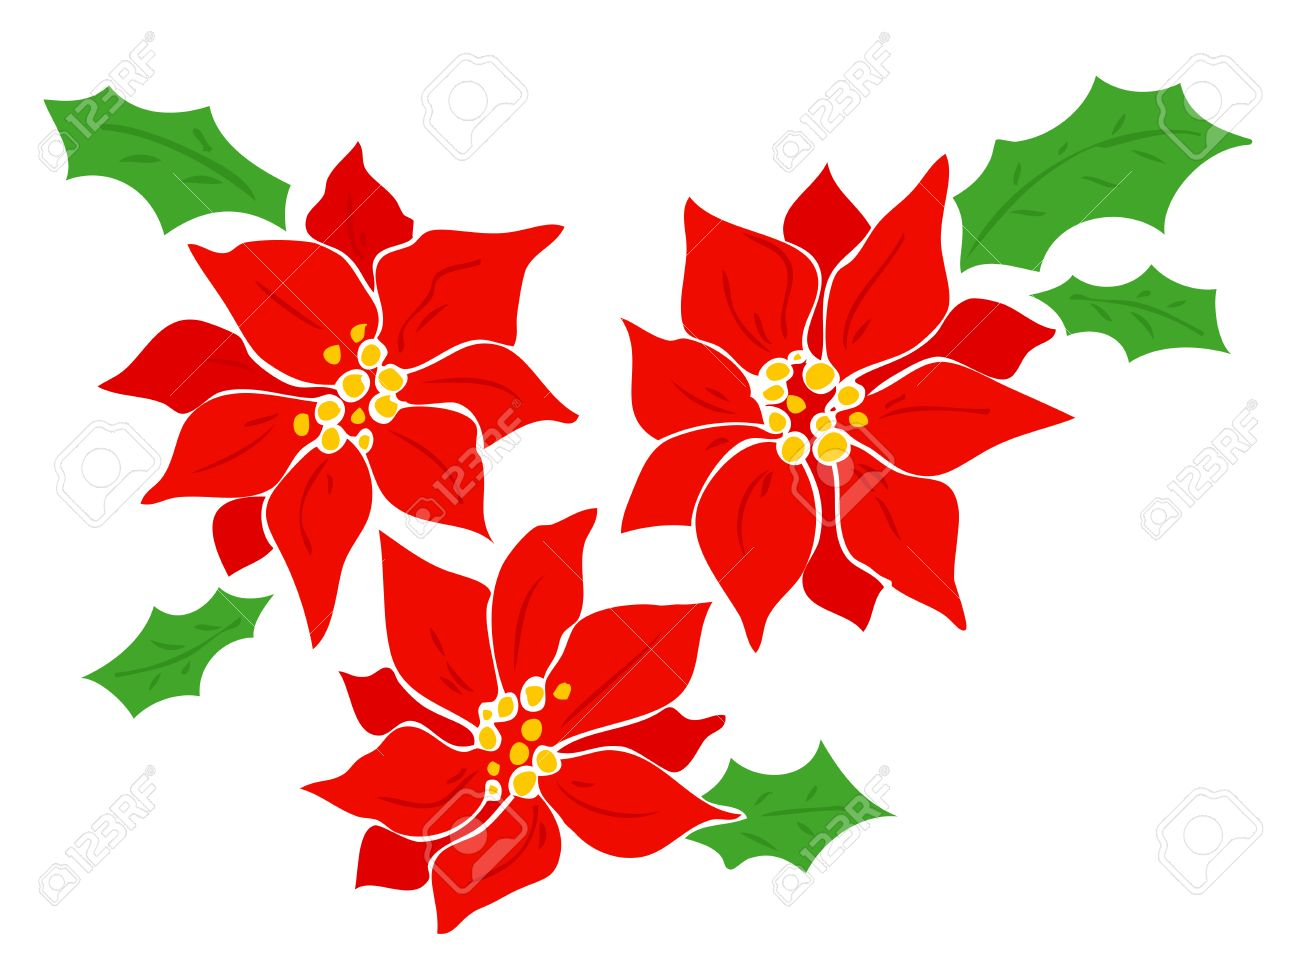 7 108 poinsettia stock vector illustration and royalty free